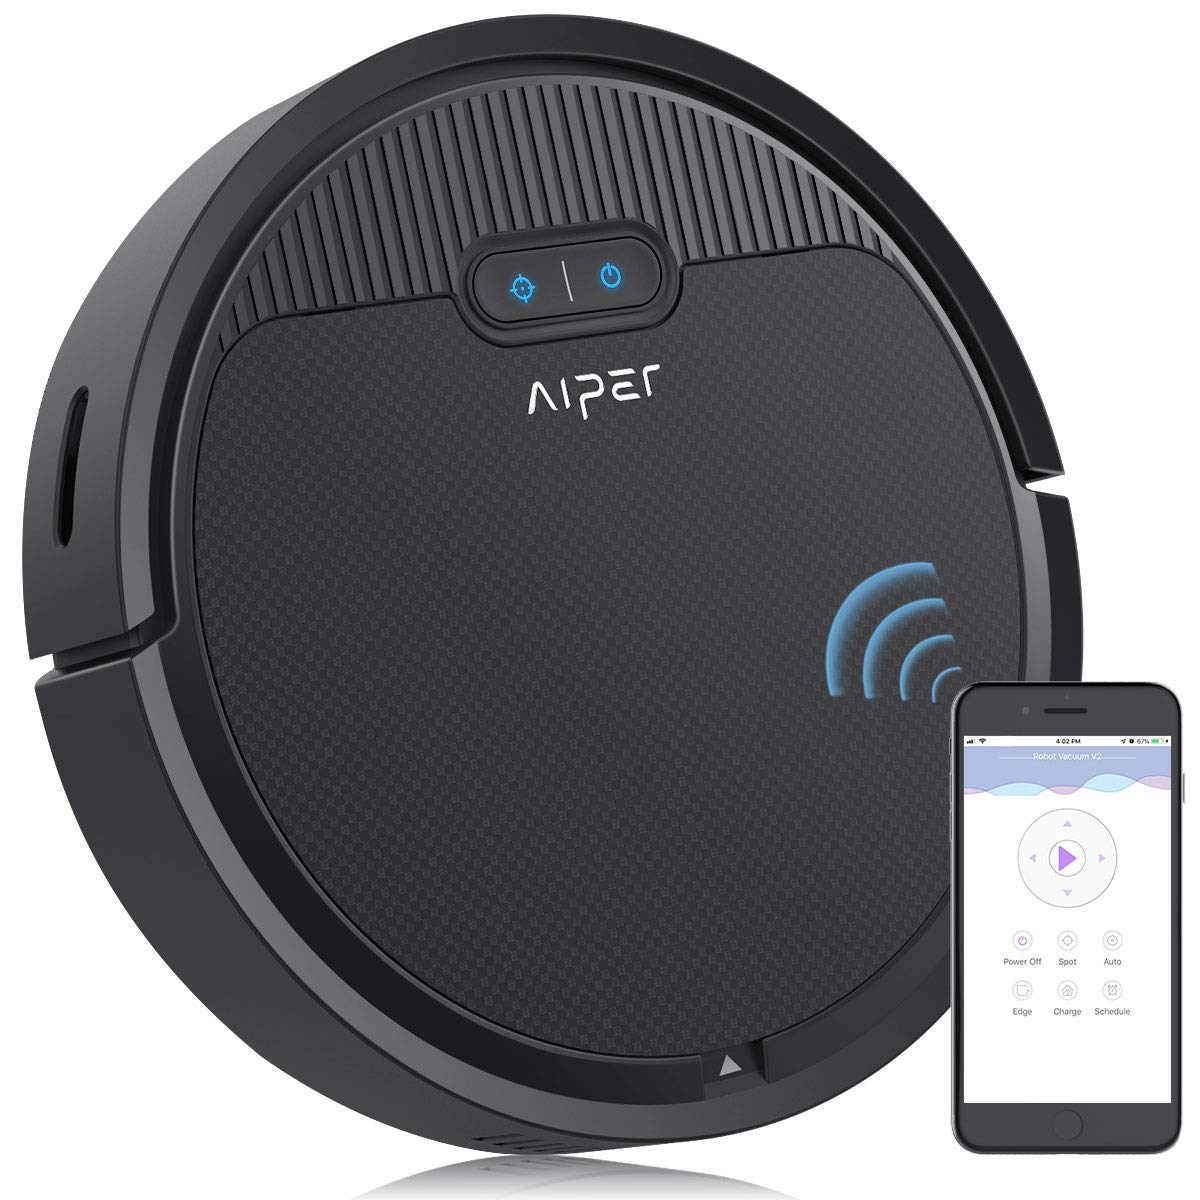 Aiper Robot Vacuum Cleaner With 1500pa Strong Suction